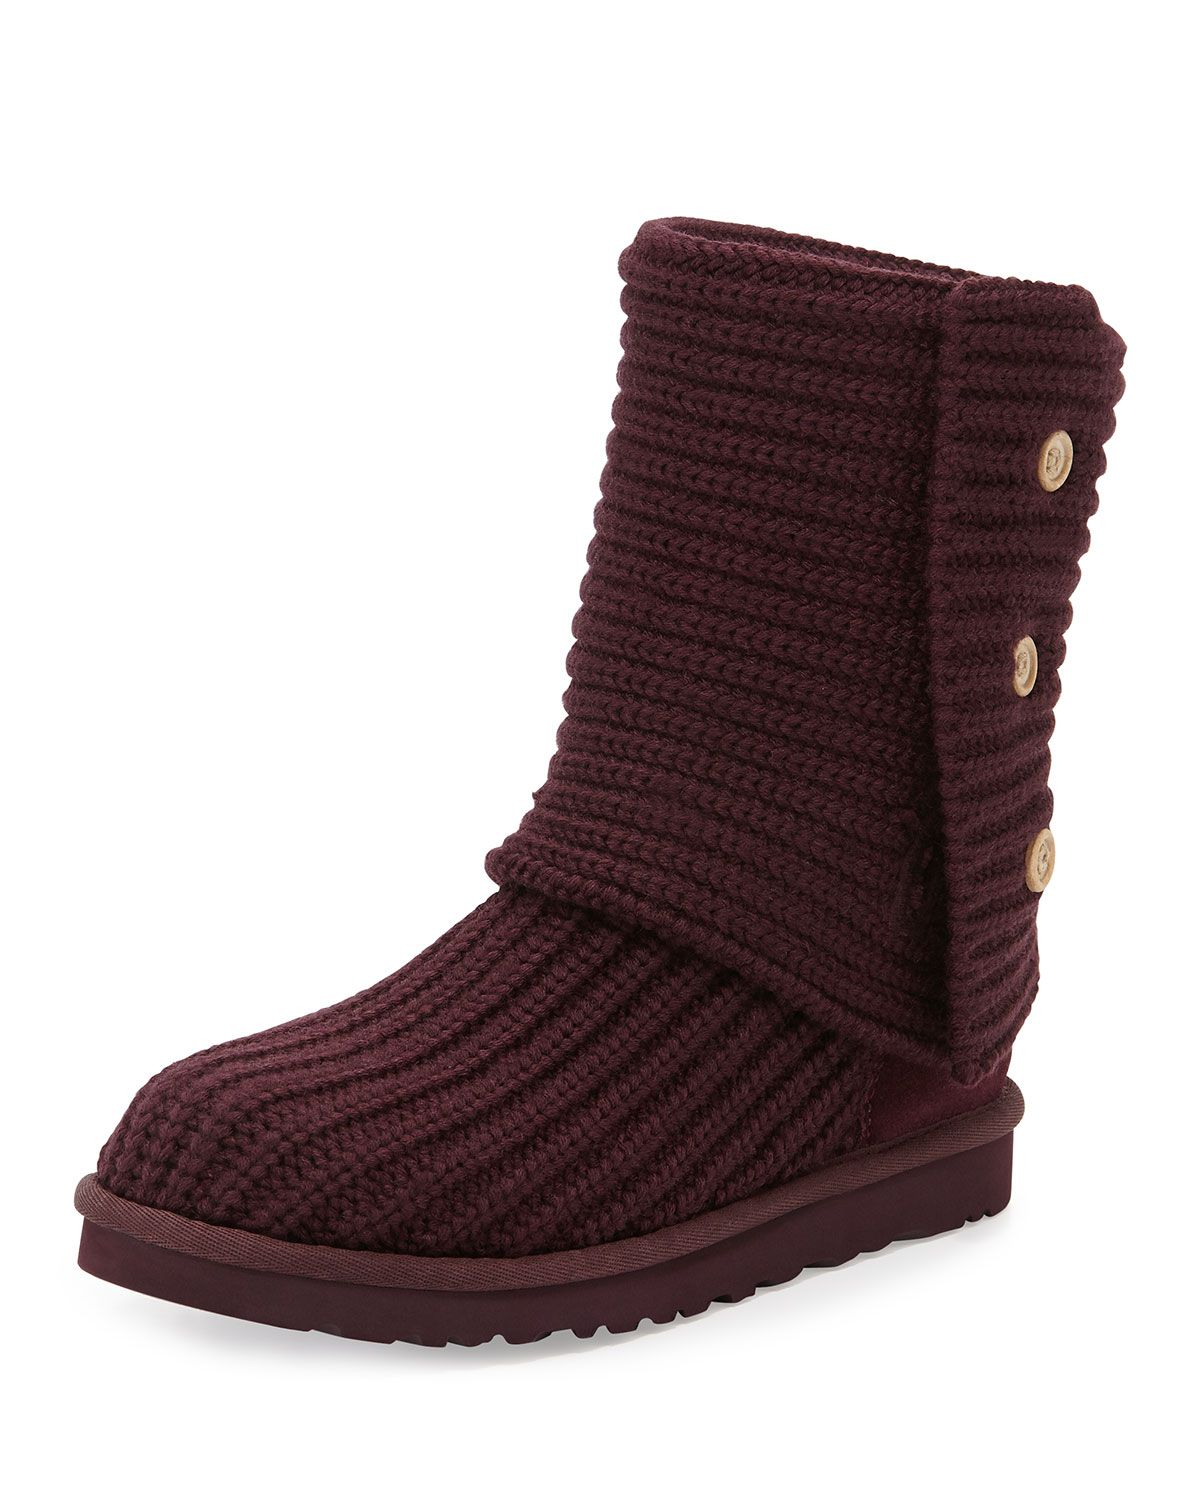 3ee1fabe54a Classic Cardy Crochet Boot Port | UGGS | Uggs, Ugg boots, Ugg ...